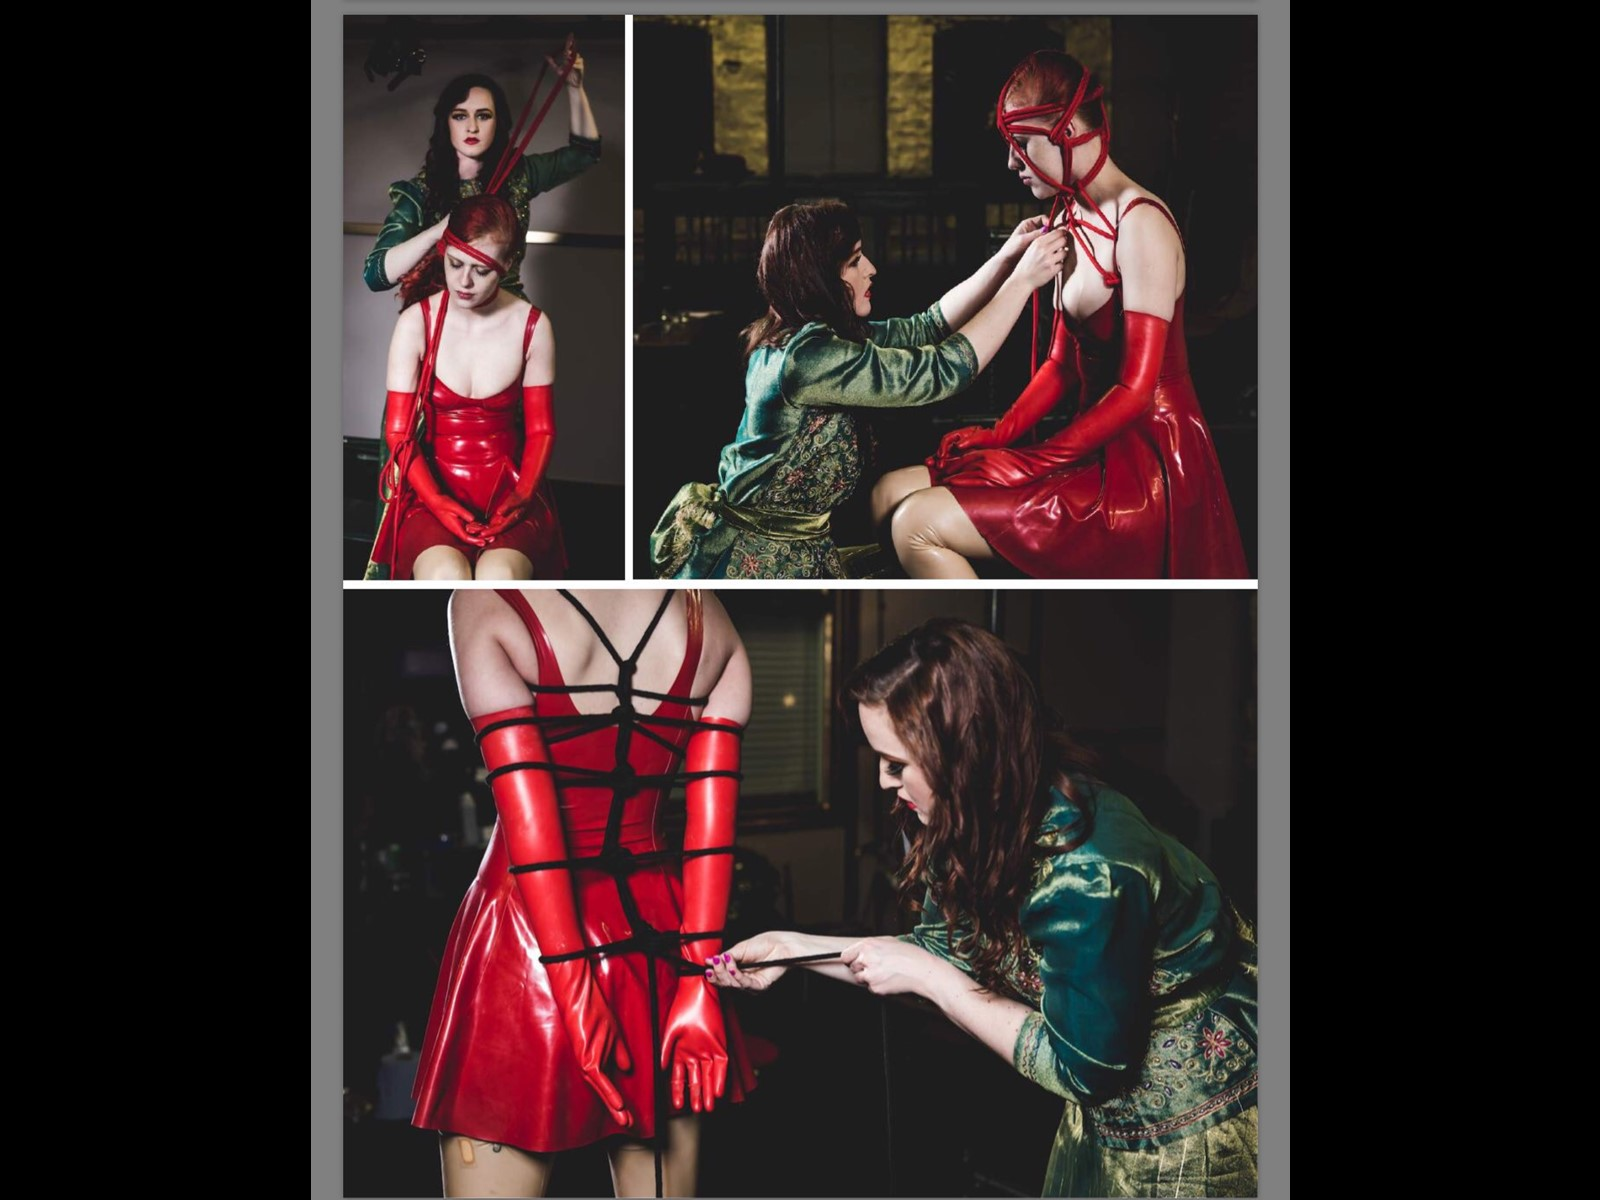 Rope Photoshoot Latex Shibari Slave Girl